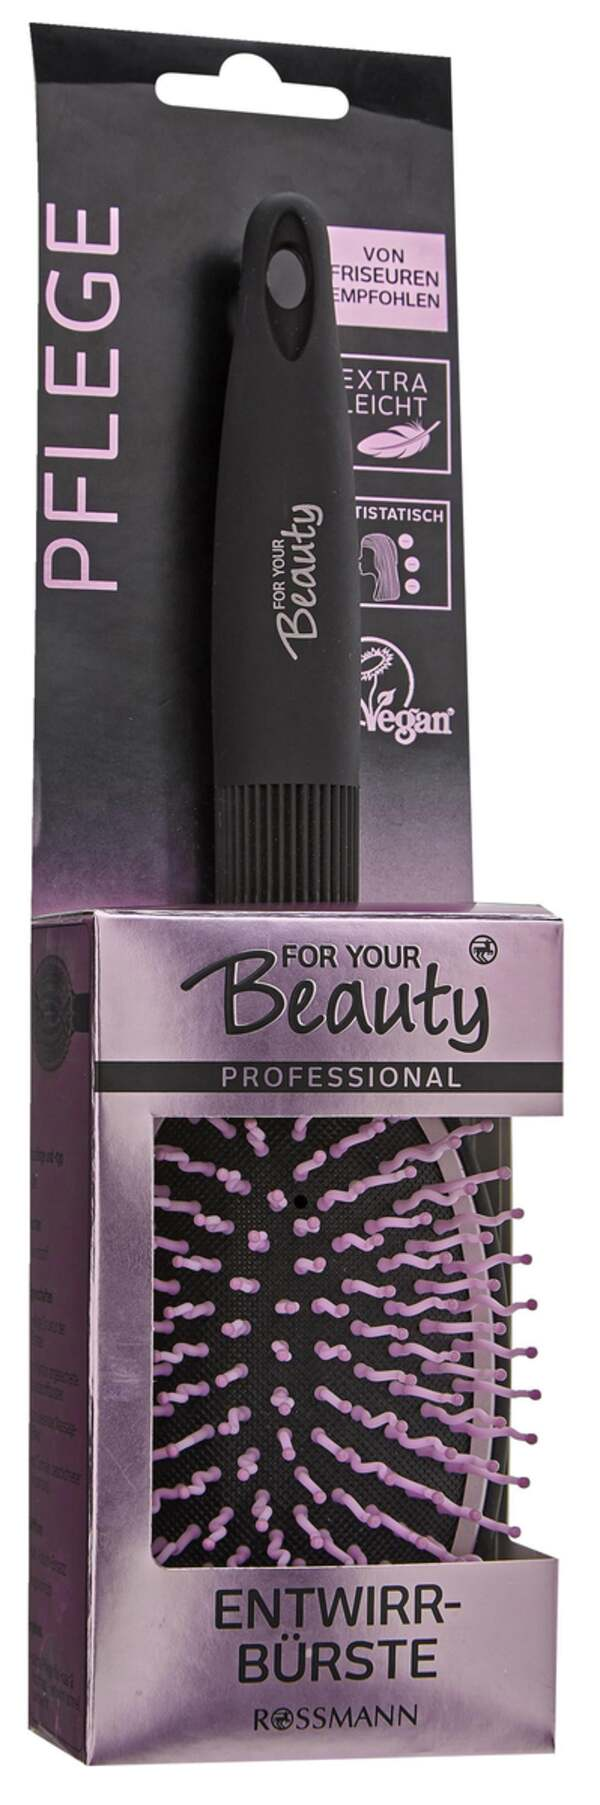 for your Beauty FOR YOUR BEAUTY PROFESSIONAL ENTWIRRBÜRSTE